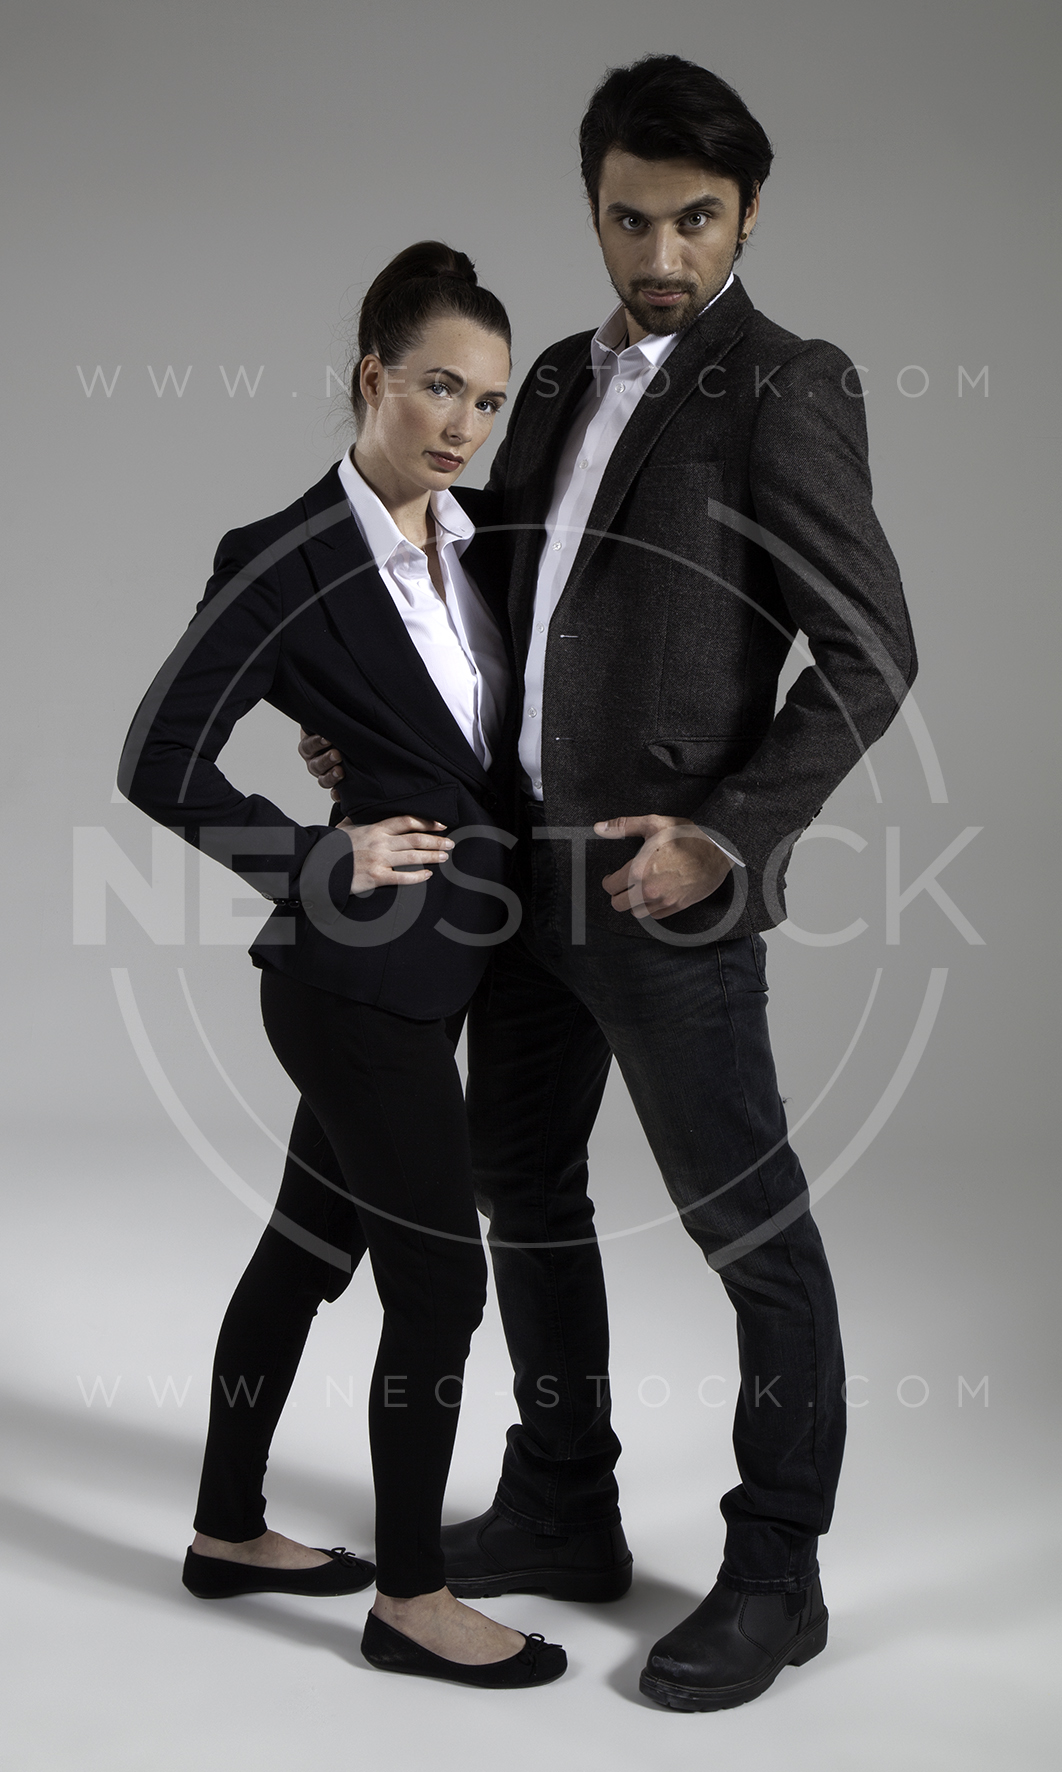 NeoStock - Cop Drama Duo - Stock Photography III